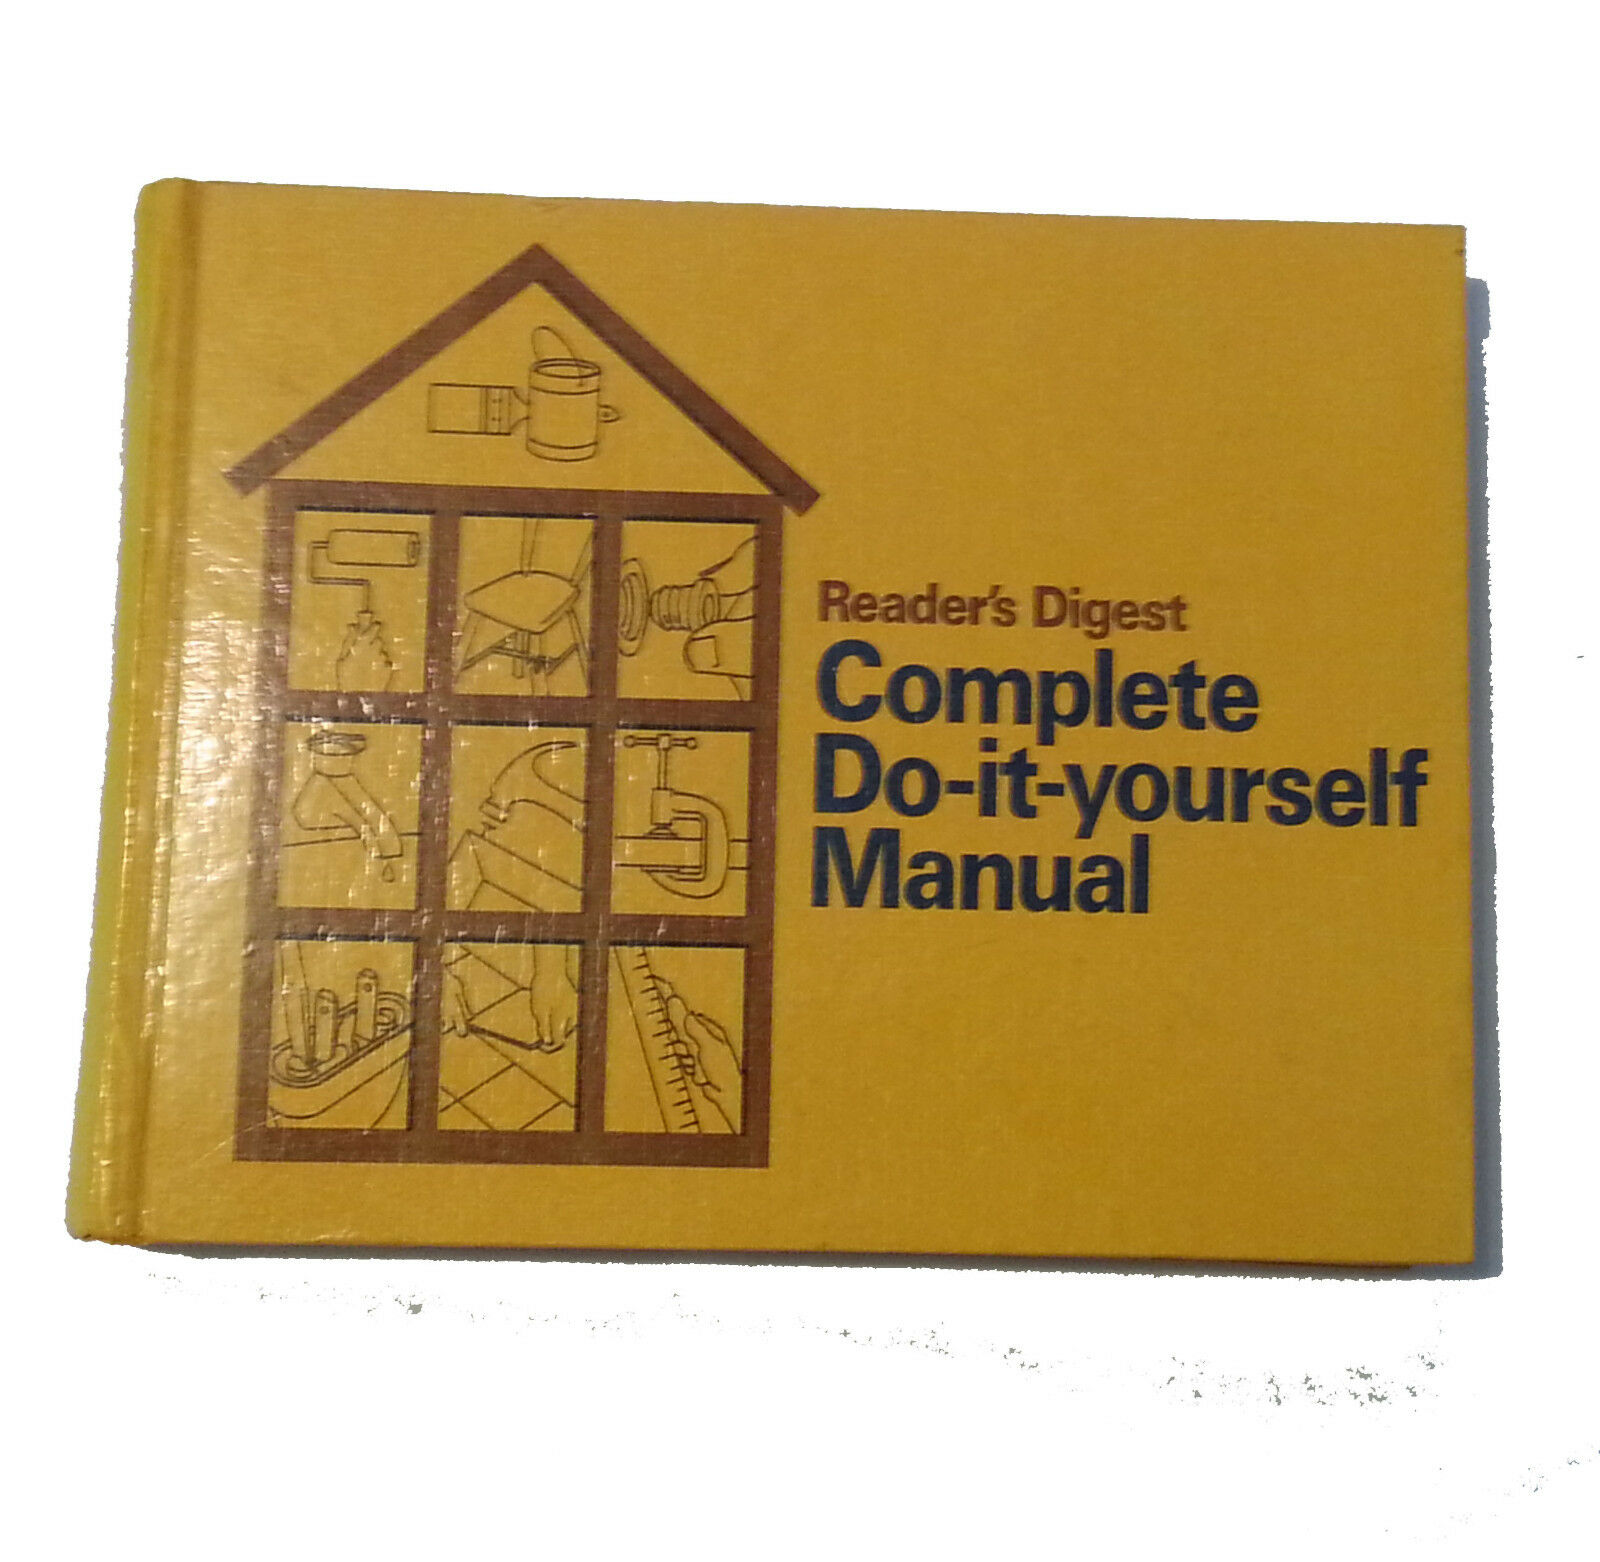 Readers digest completa hgalo usted mismo manual libro de tapa dura readers digest complete do it yourself manual hardcover book solutioingenieria Gallery